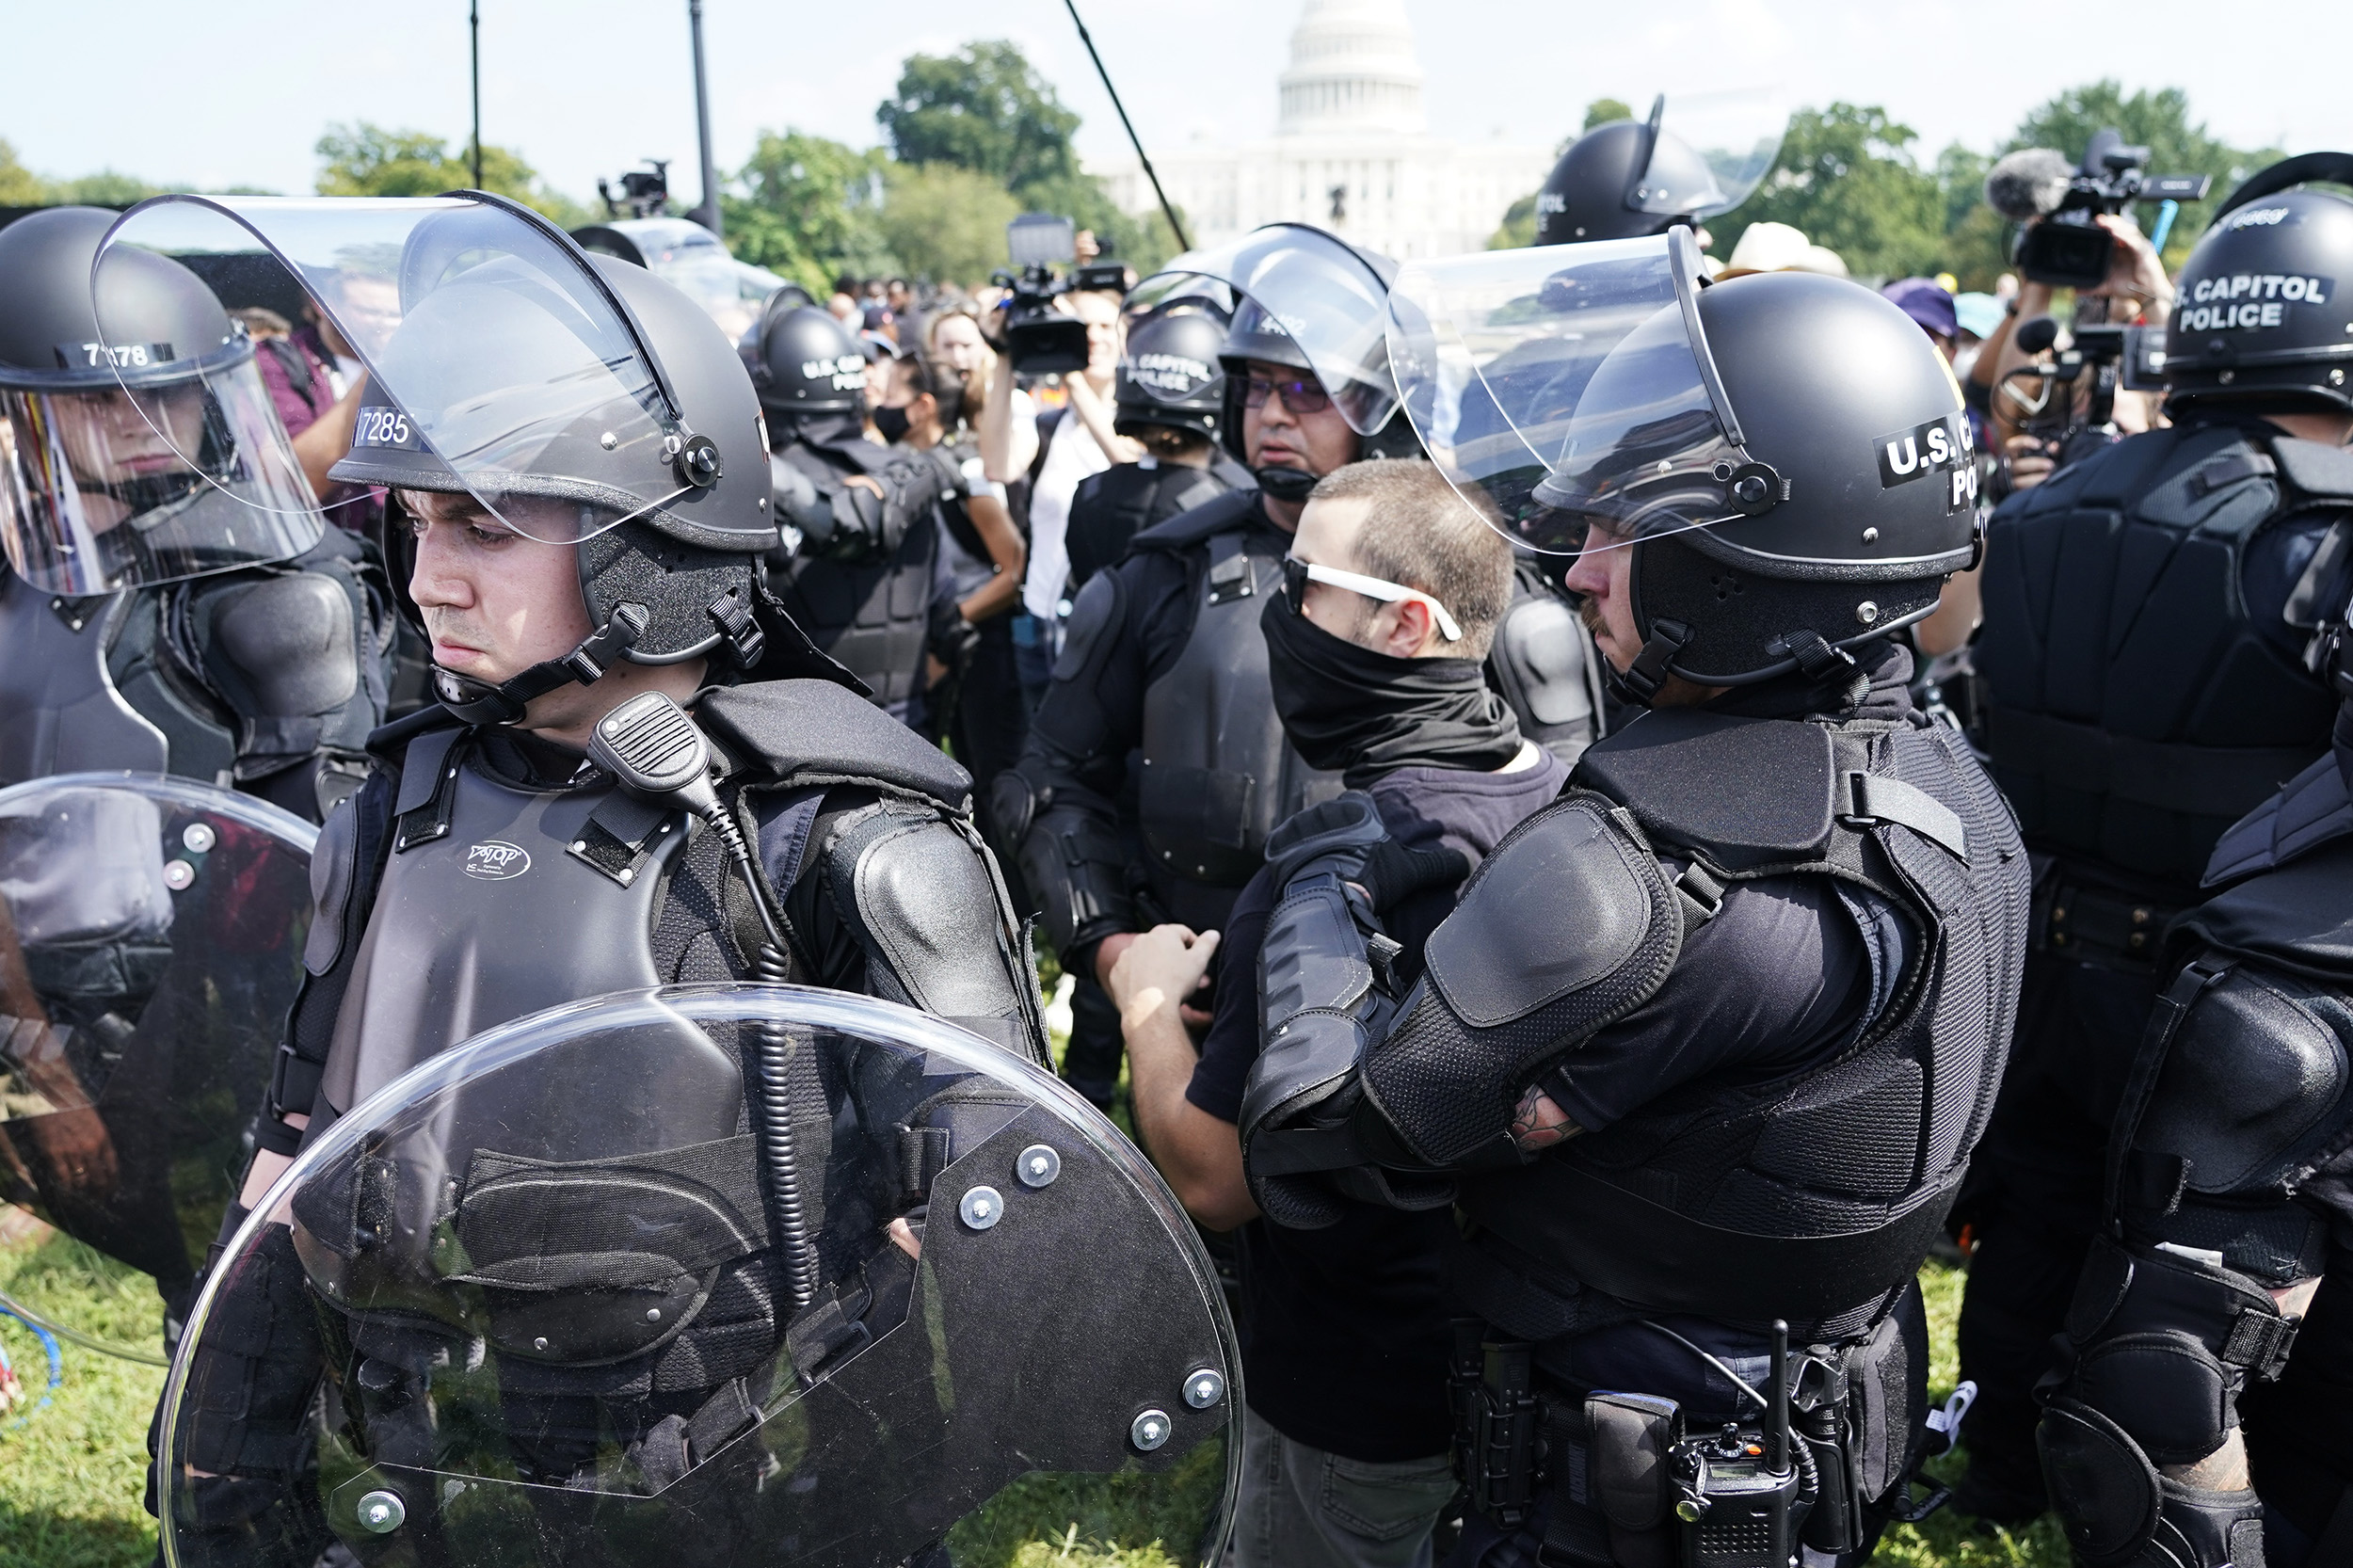 Federal officer arrested at Capitol rally won't be charged